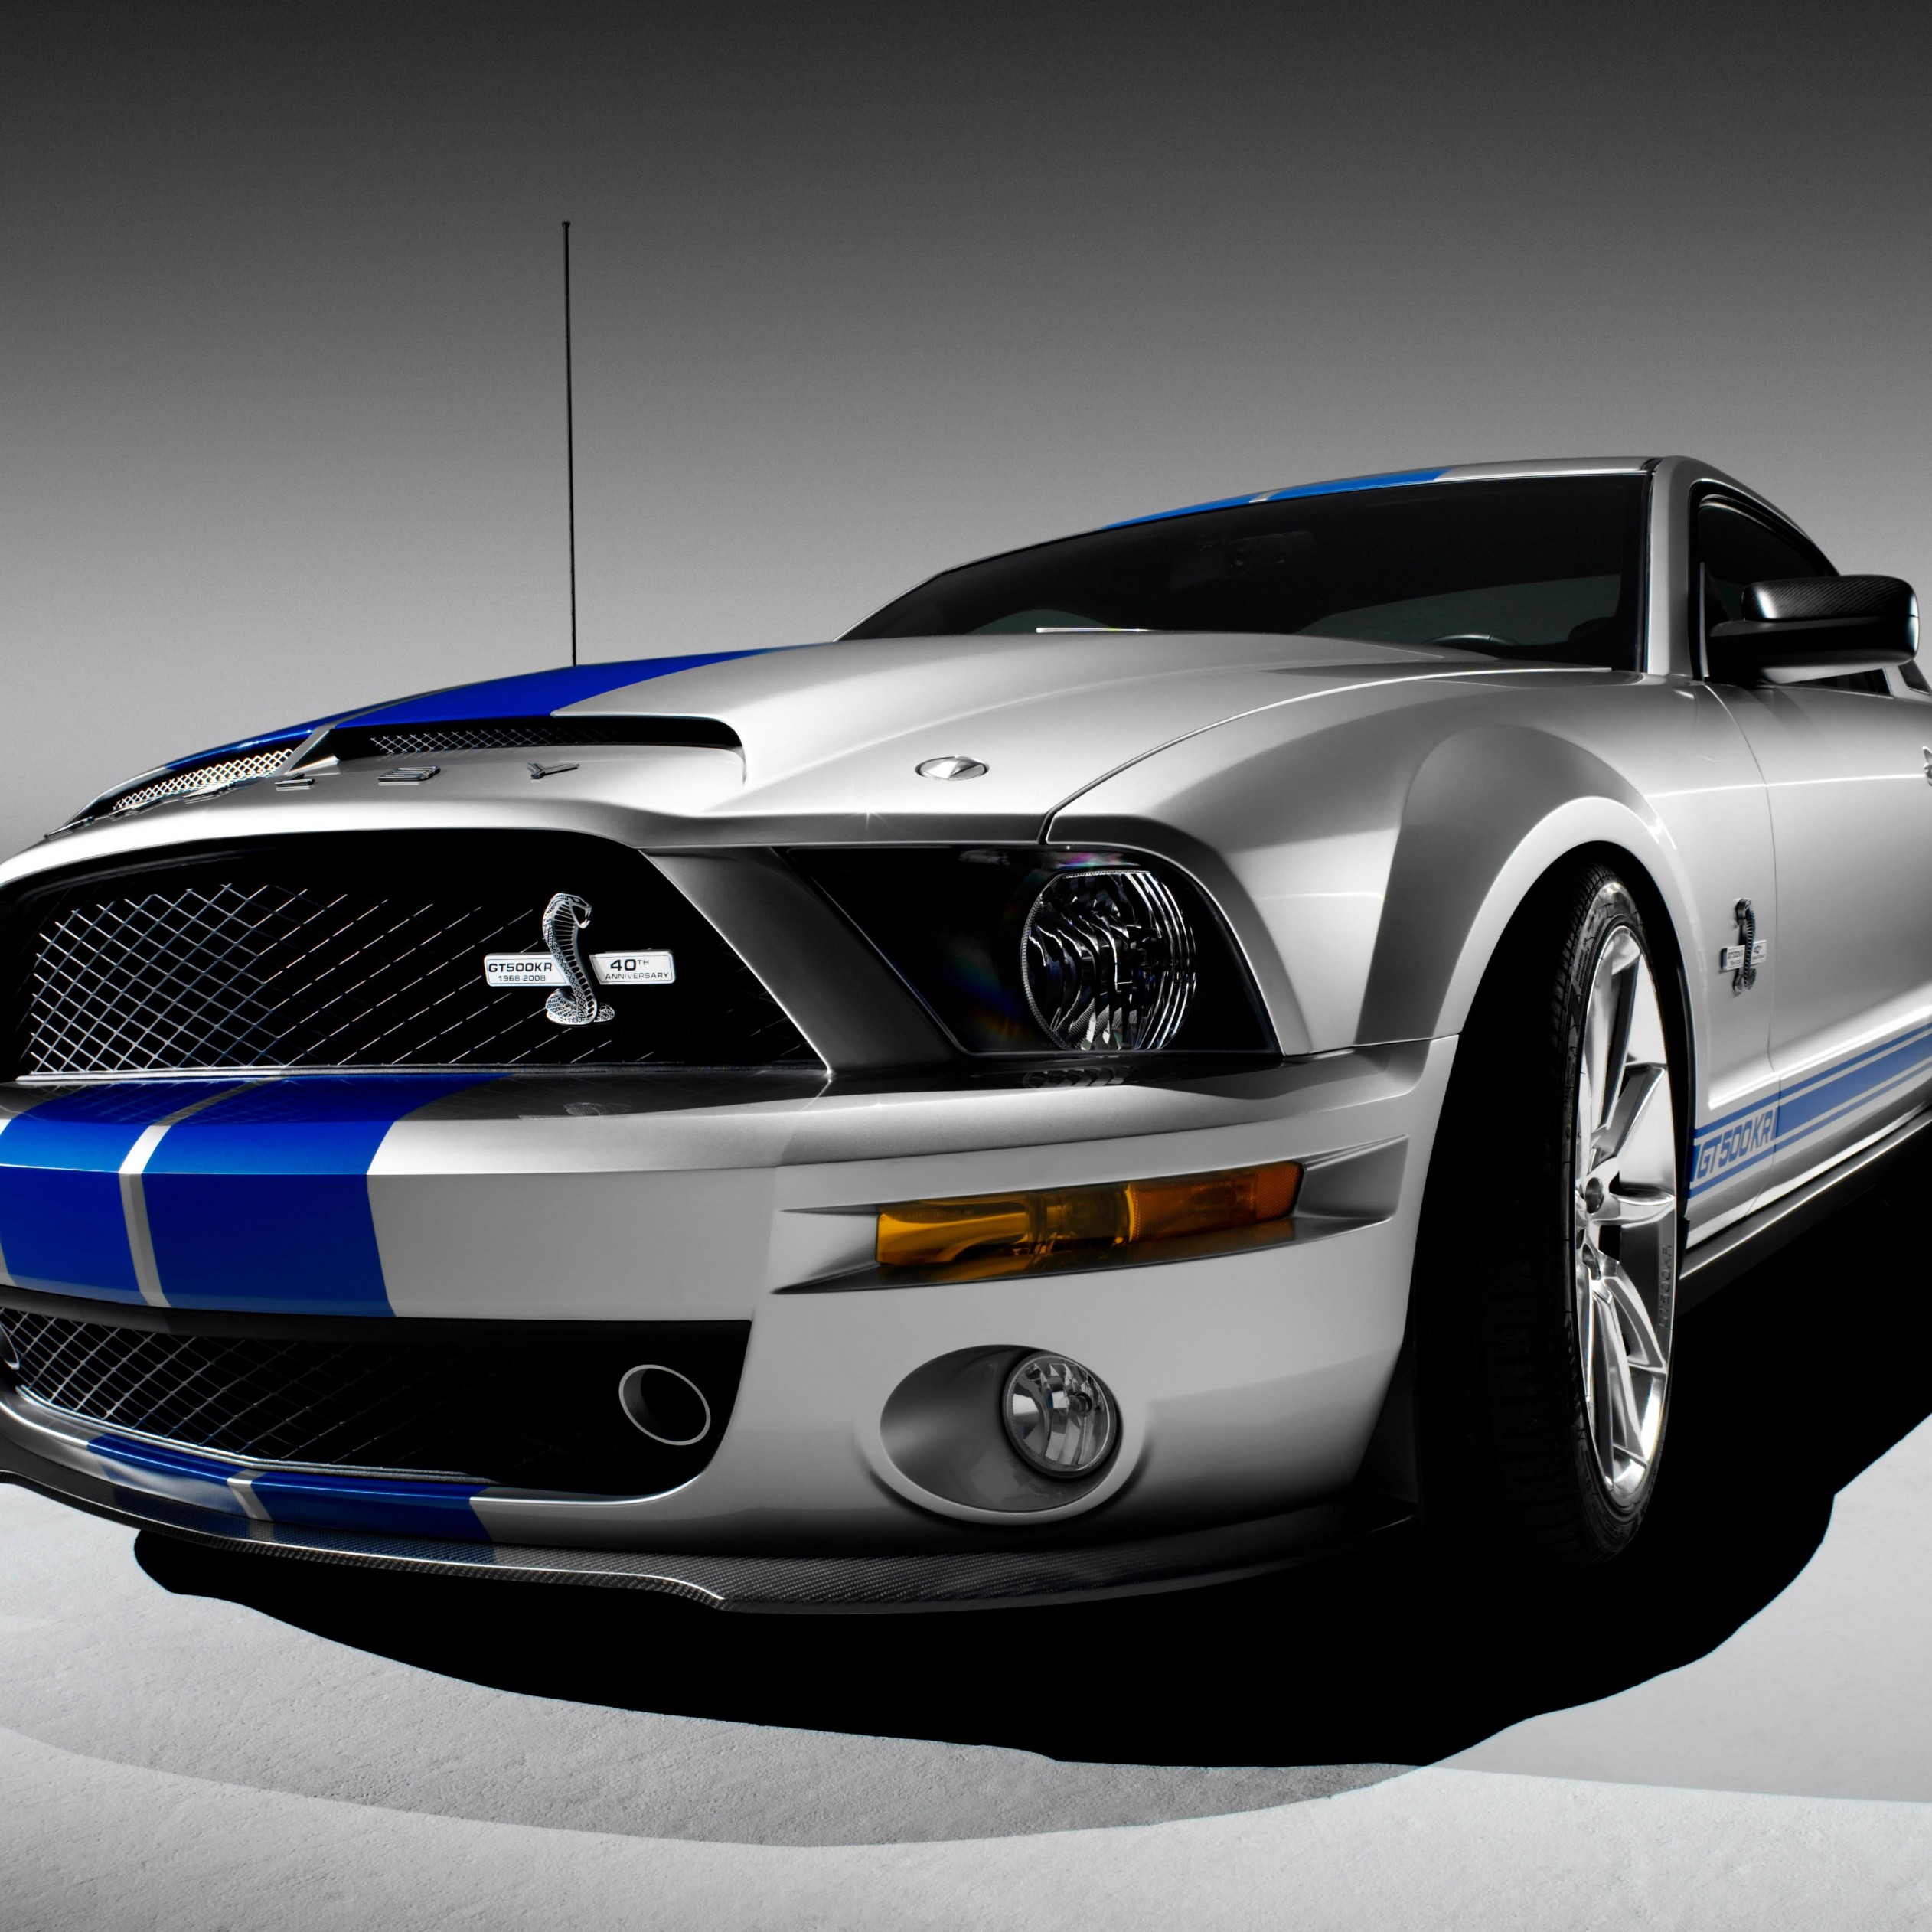 Shelby Mustang GT500KR Wallpaper for Apple iPad 4